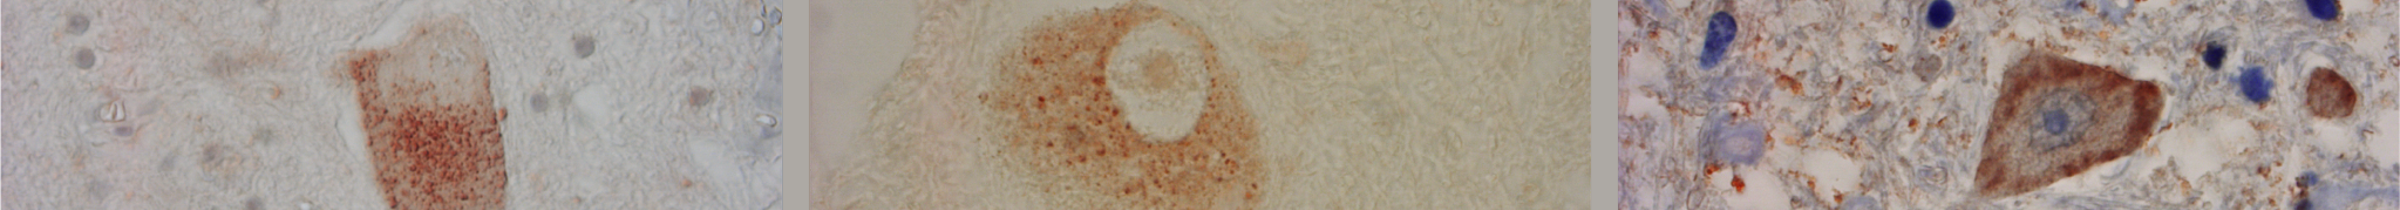 Figure 1. Micrographs of spinal cord motoneurons showing SOD1-immunoreactive inclusions.